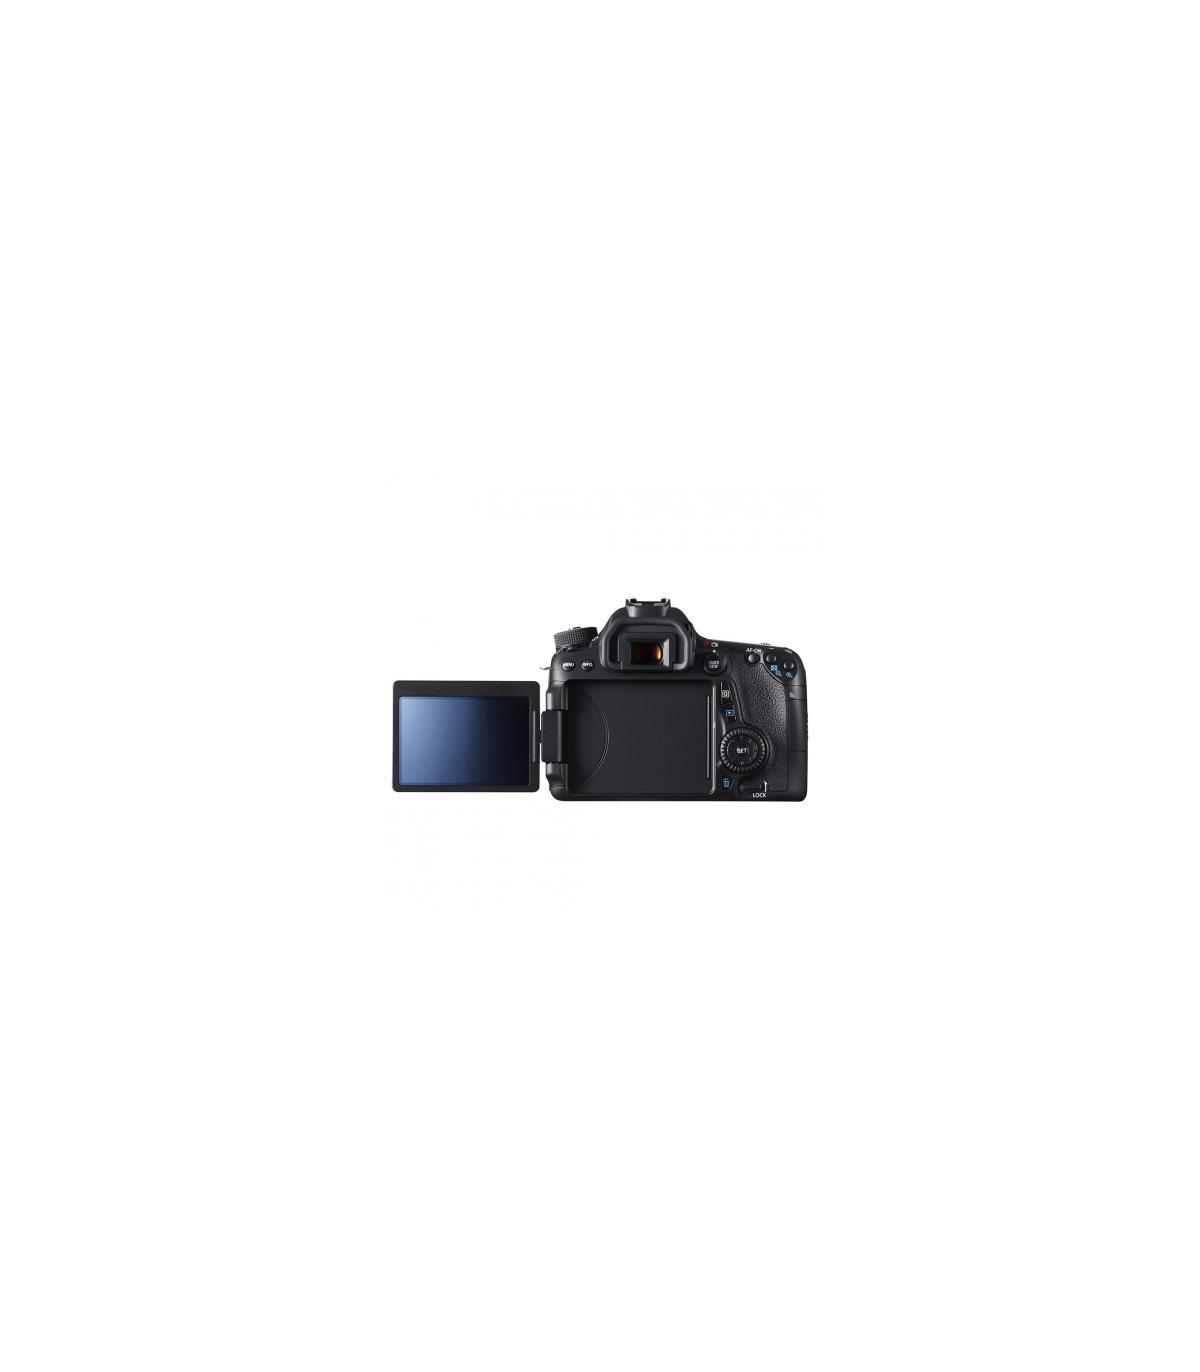 Canon Eos 70d Body 20 Mpx Full Hd Af 19 Puncte In Cruce Wi Fi